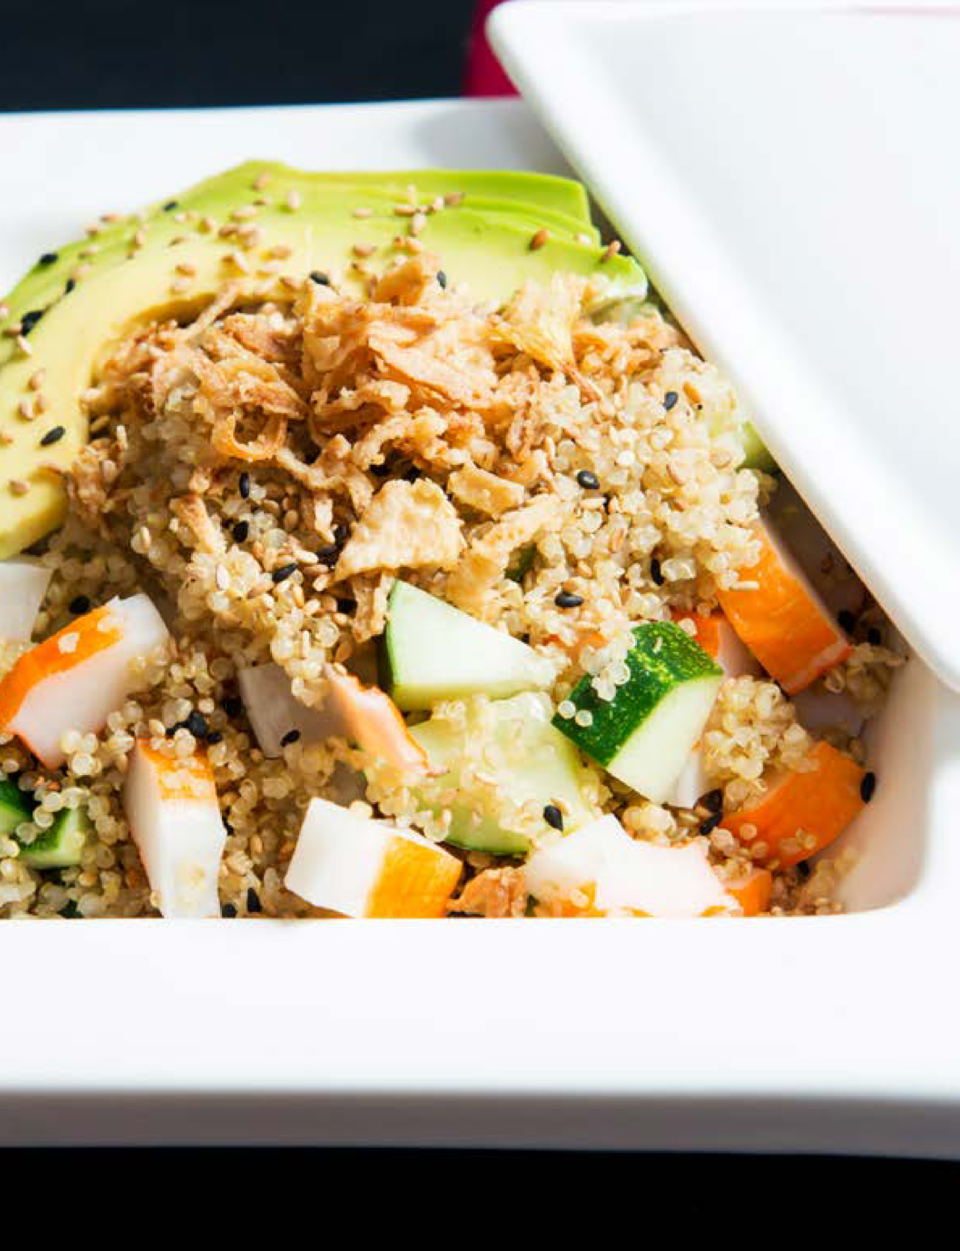 SHARPEN YOUR APPETITE  SHARPEN YOUR APPETITE  Quinoa Sushi Salad ESTY WOLBE   COOKING WITH TANTRUMS  The holidays are noto...